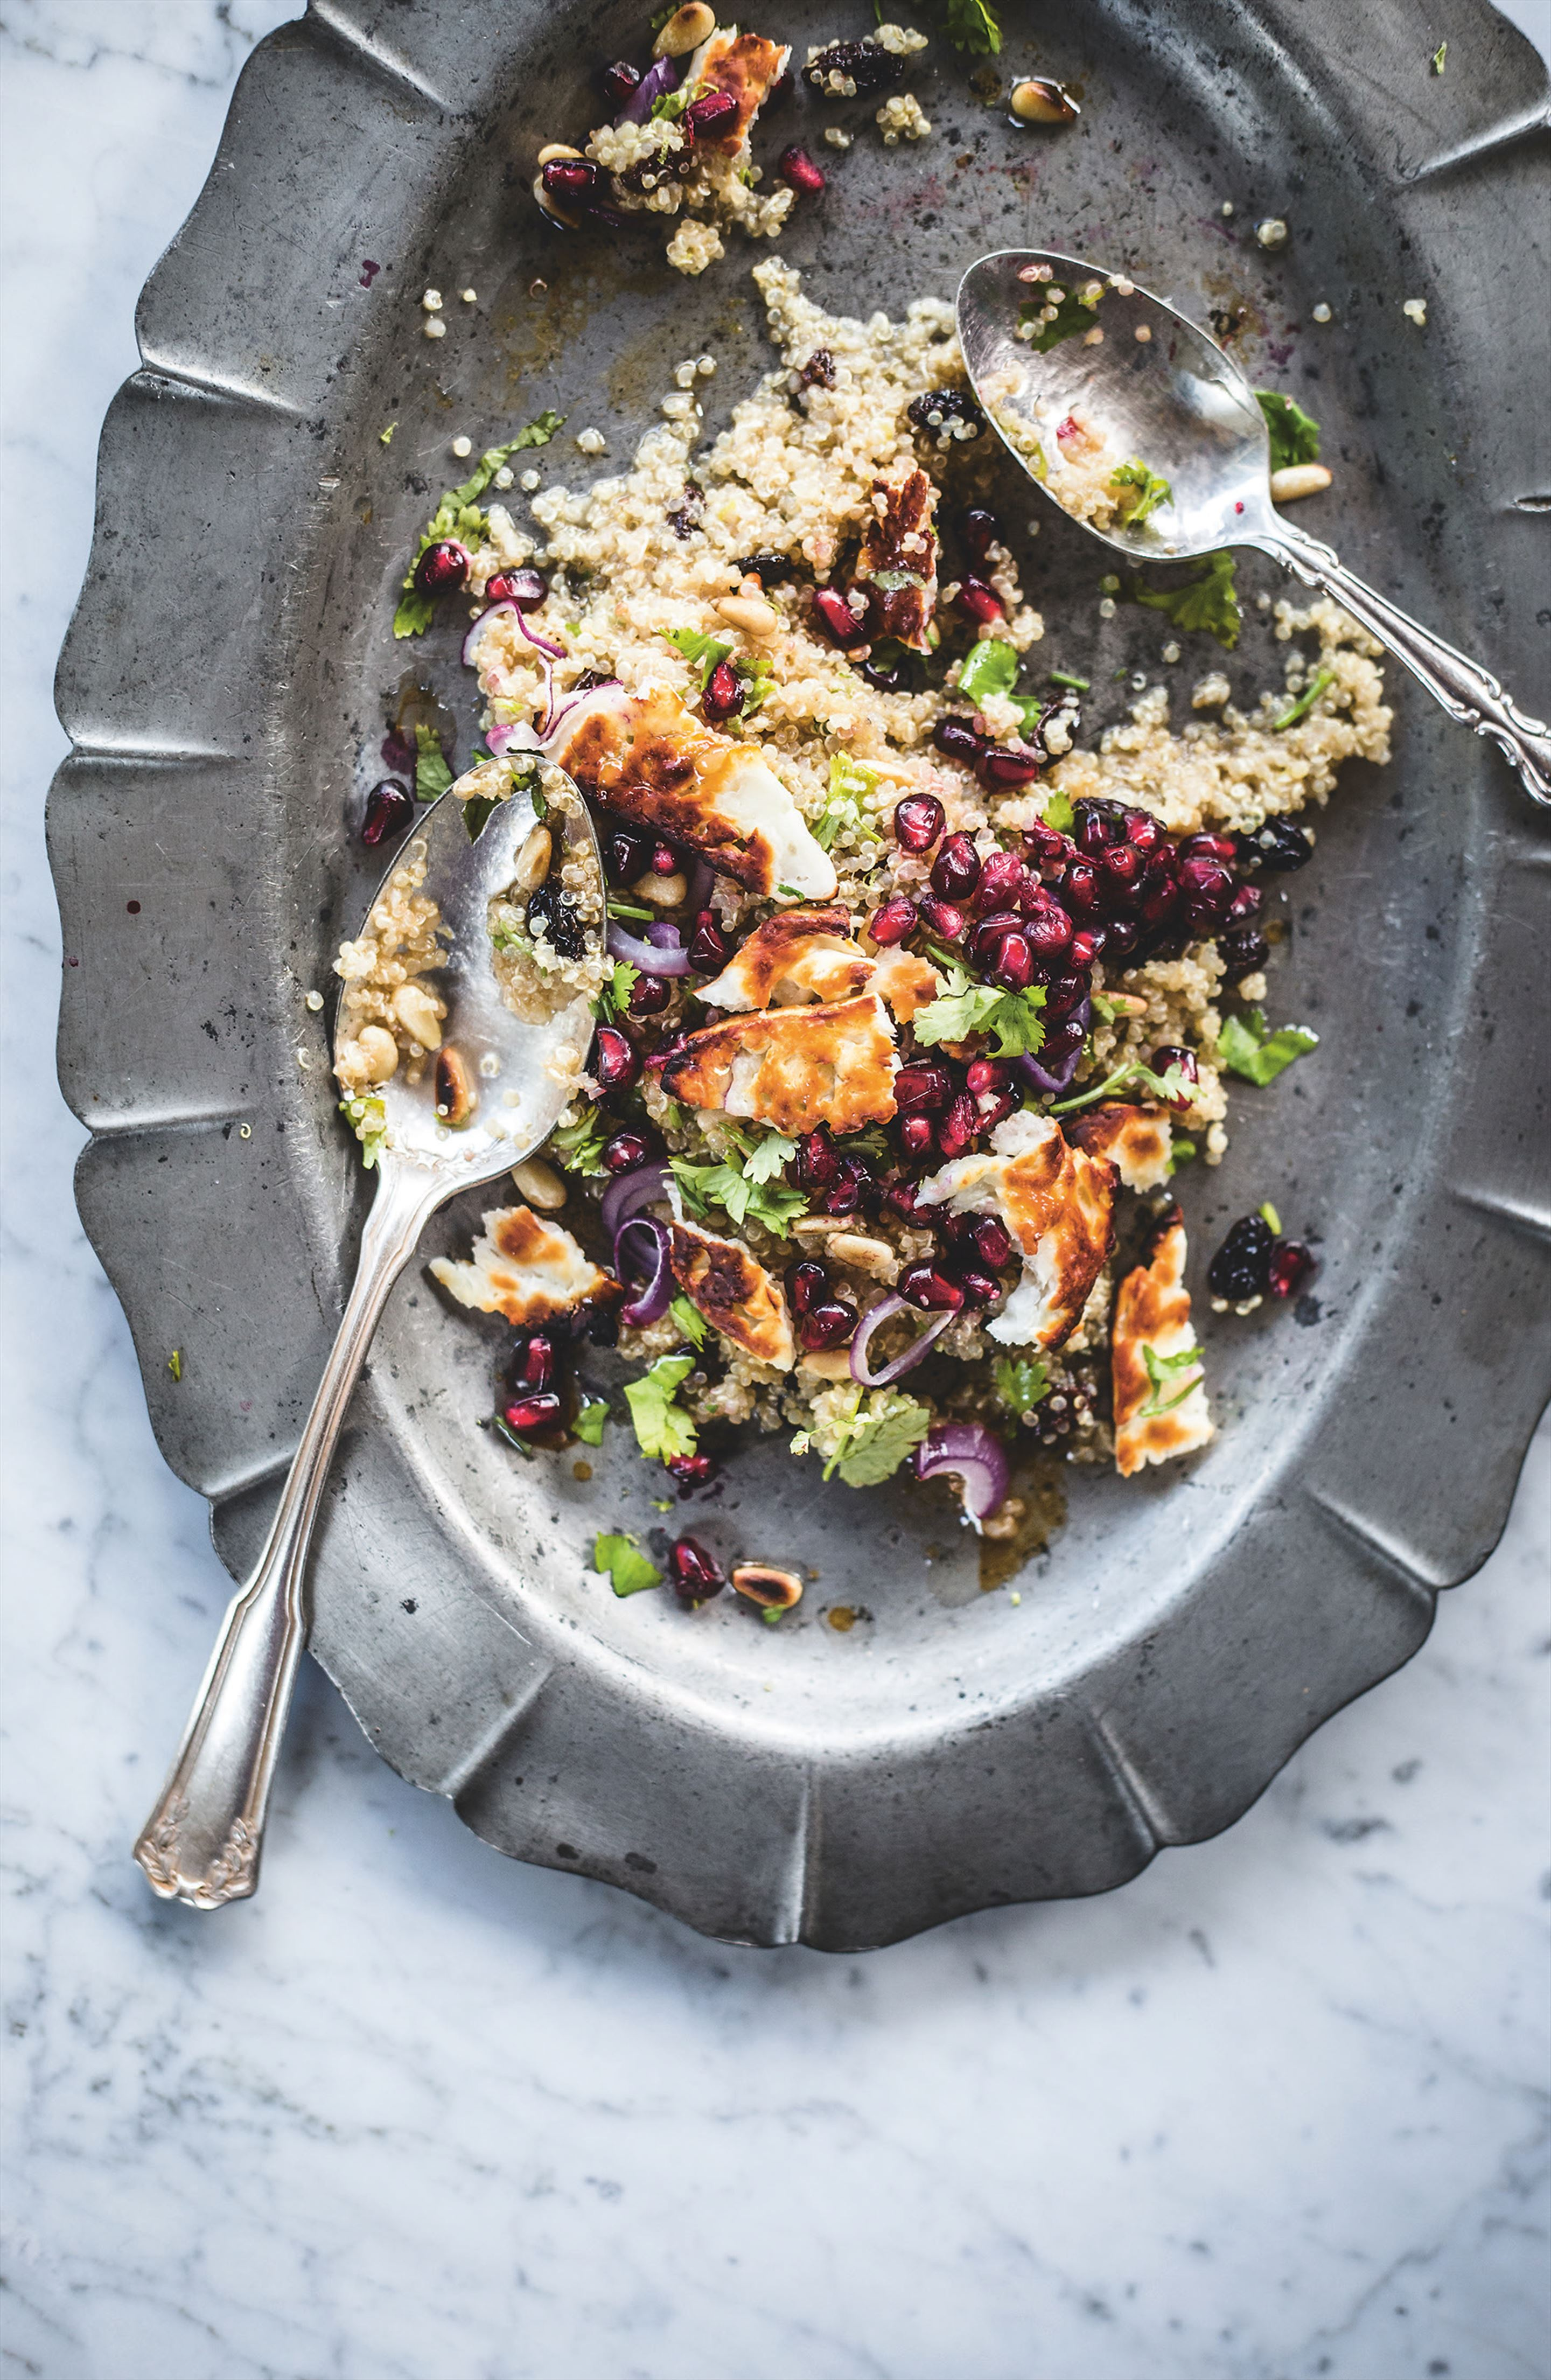 Halloumi, quinoa and pomegranate salad